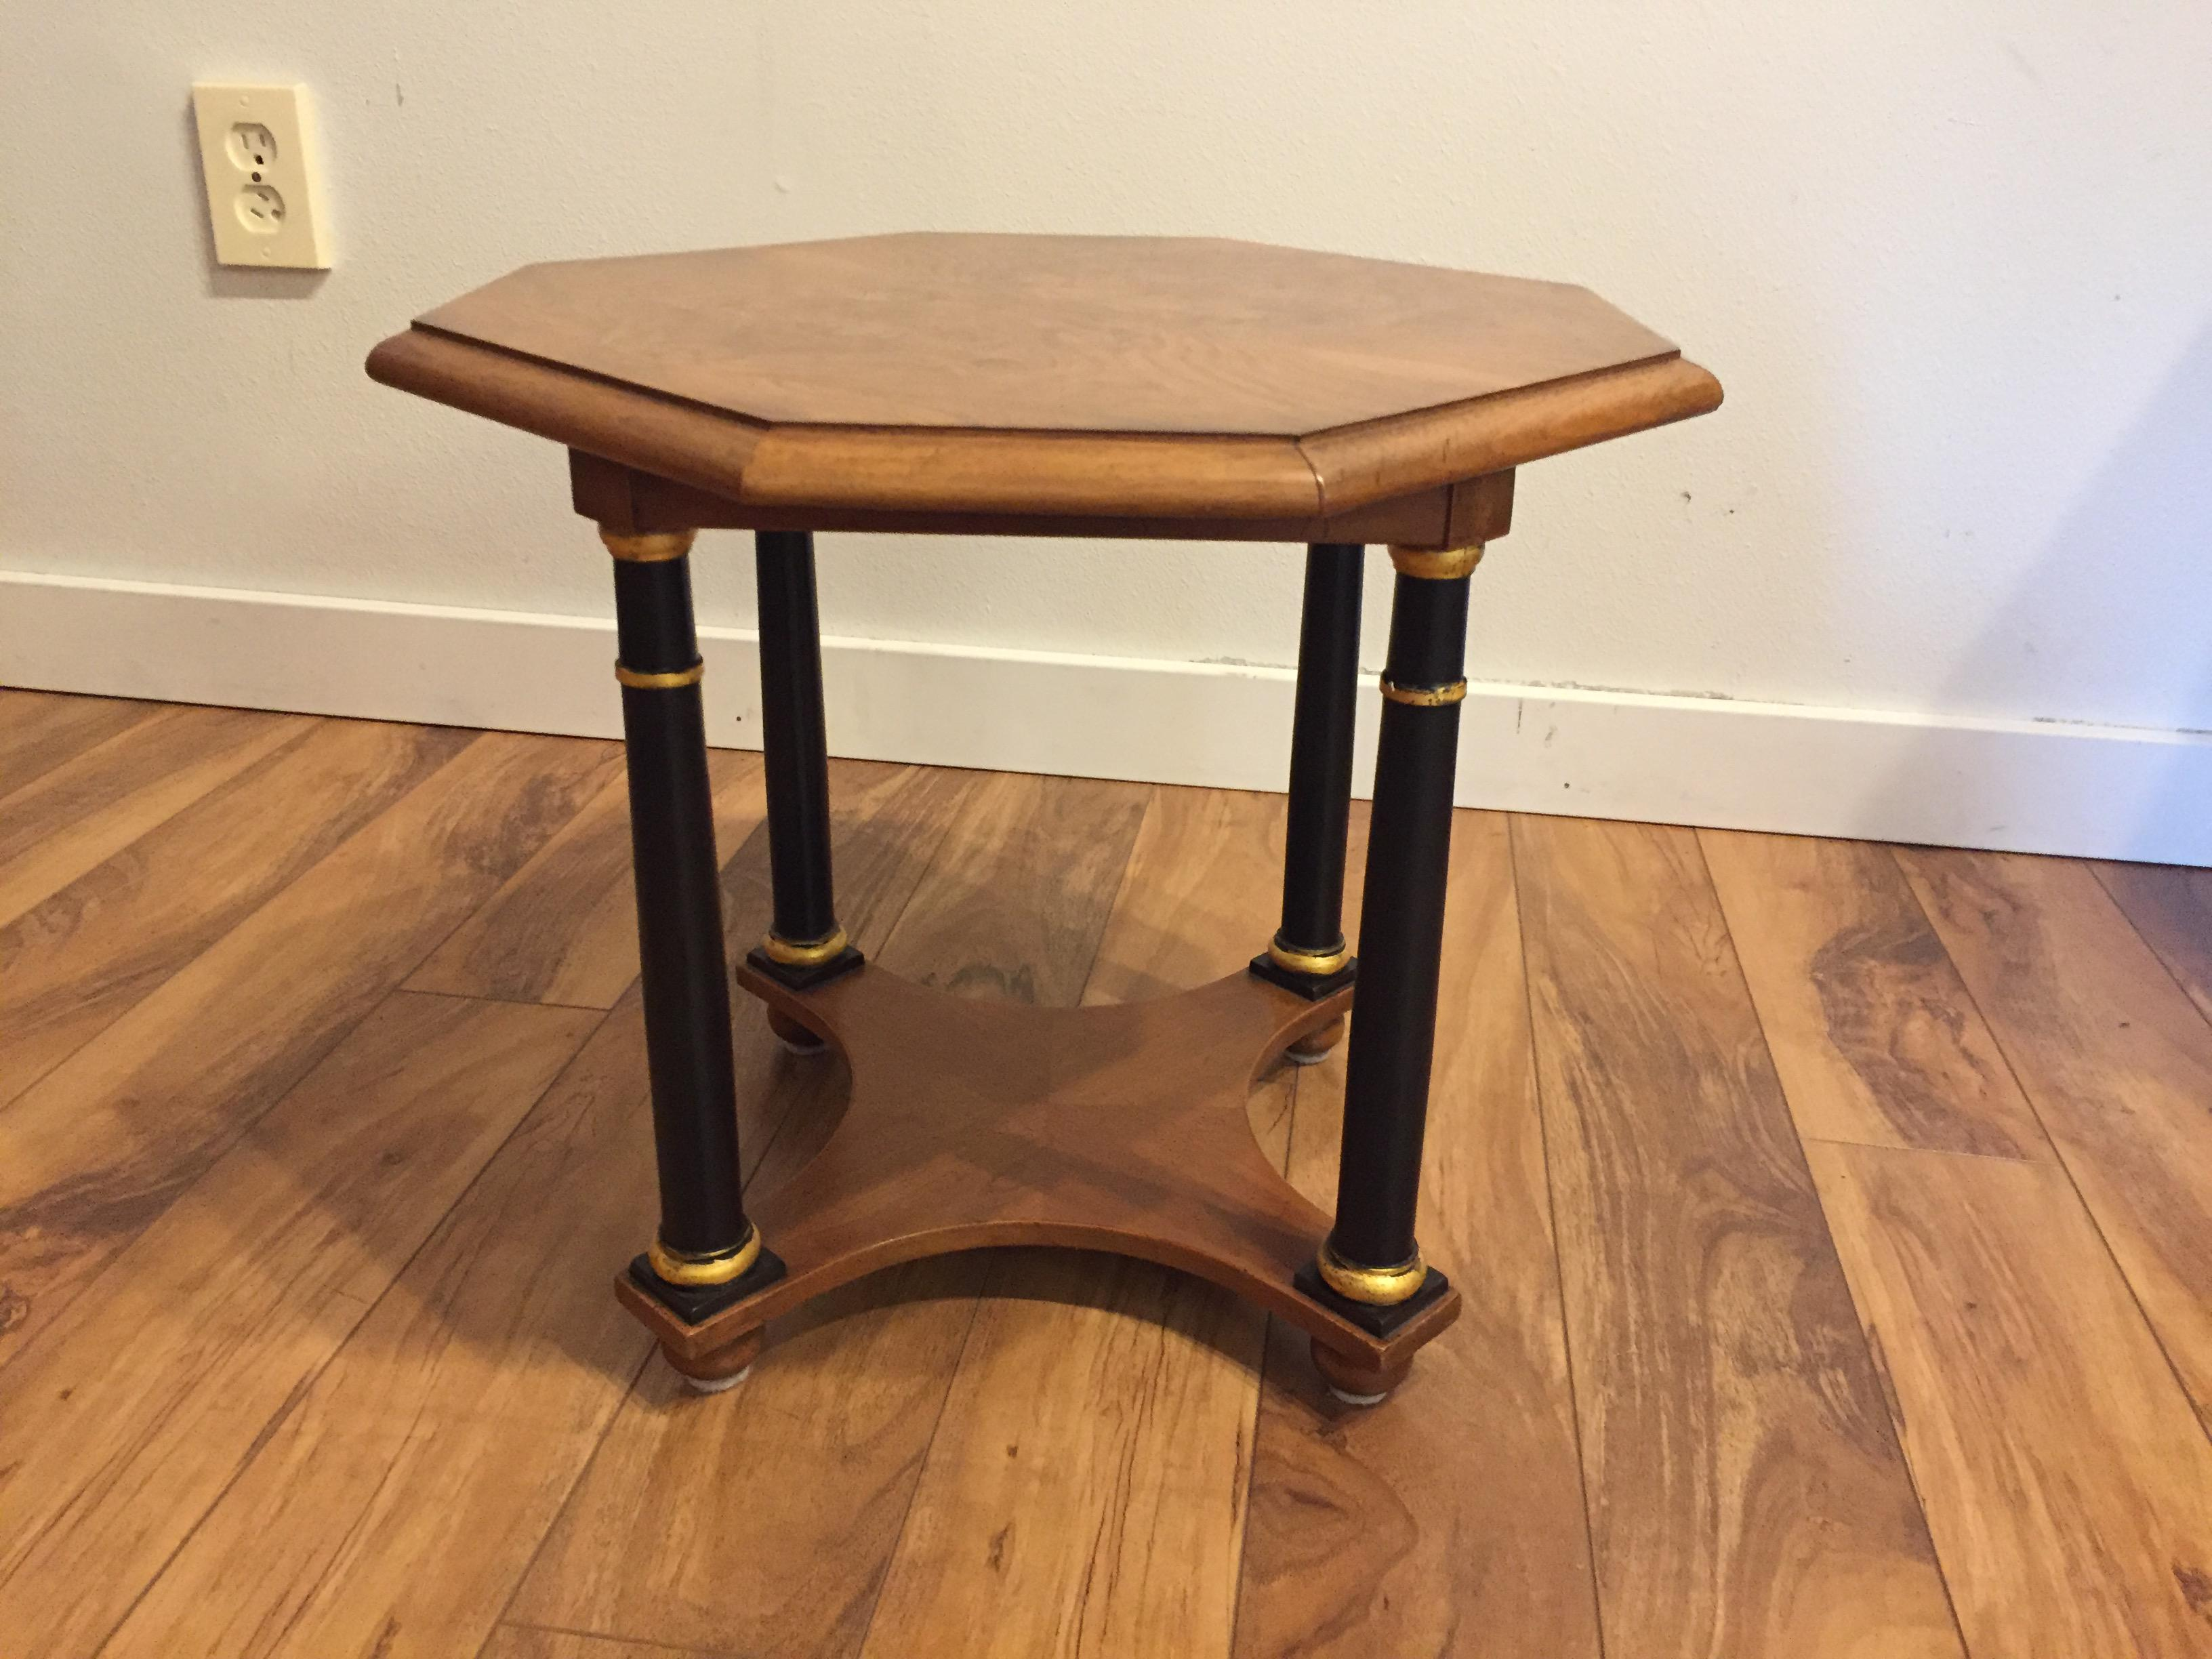 Baker Furniture Company Baker Furniture Octagonal Side Table With Burl Top  And Black Columns With Gold